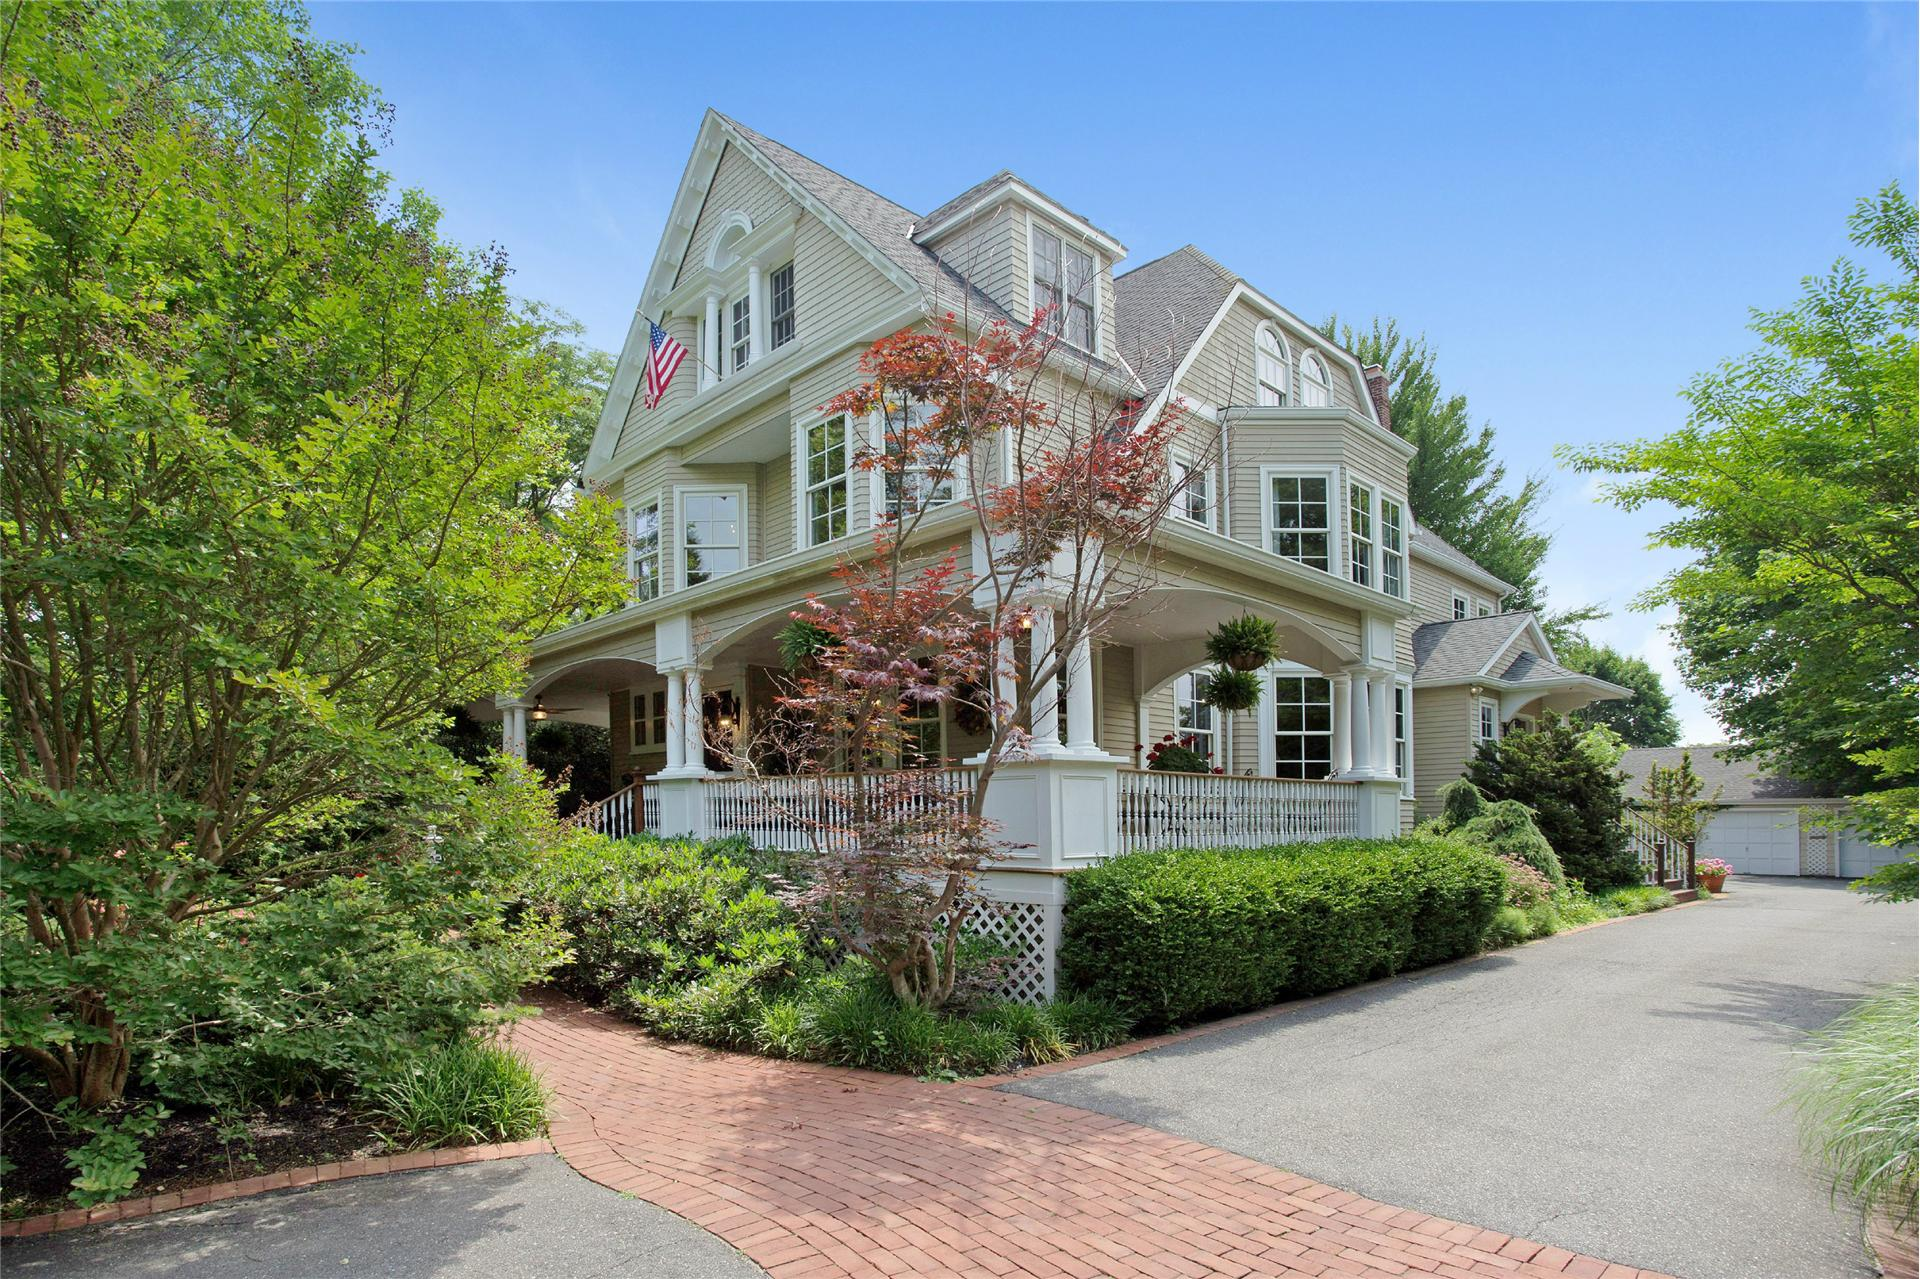 Single Family for Sale at 54 Highland Rd Glen Cove, New York 11542 United States